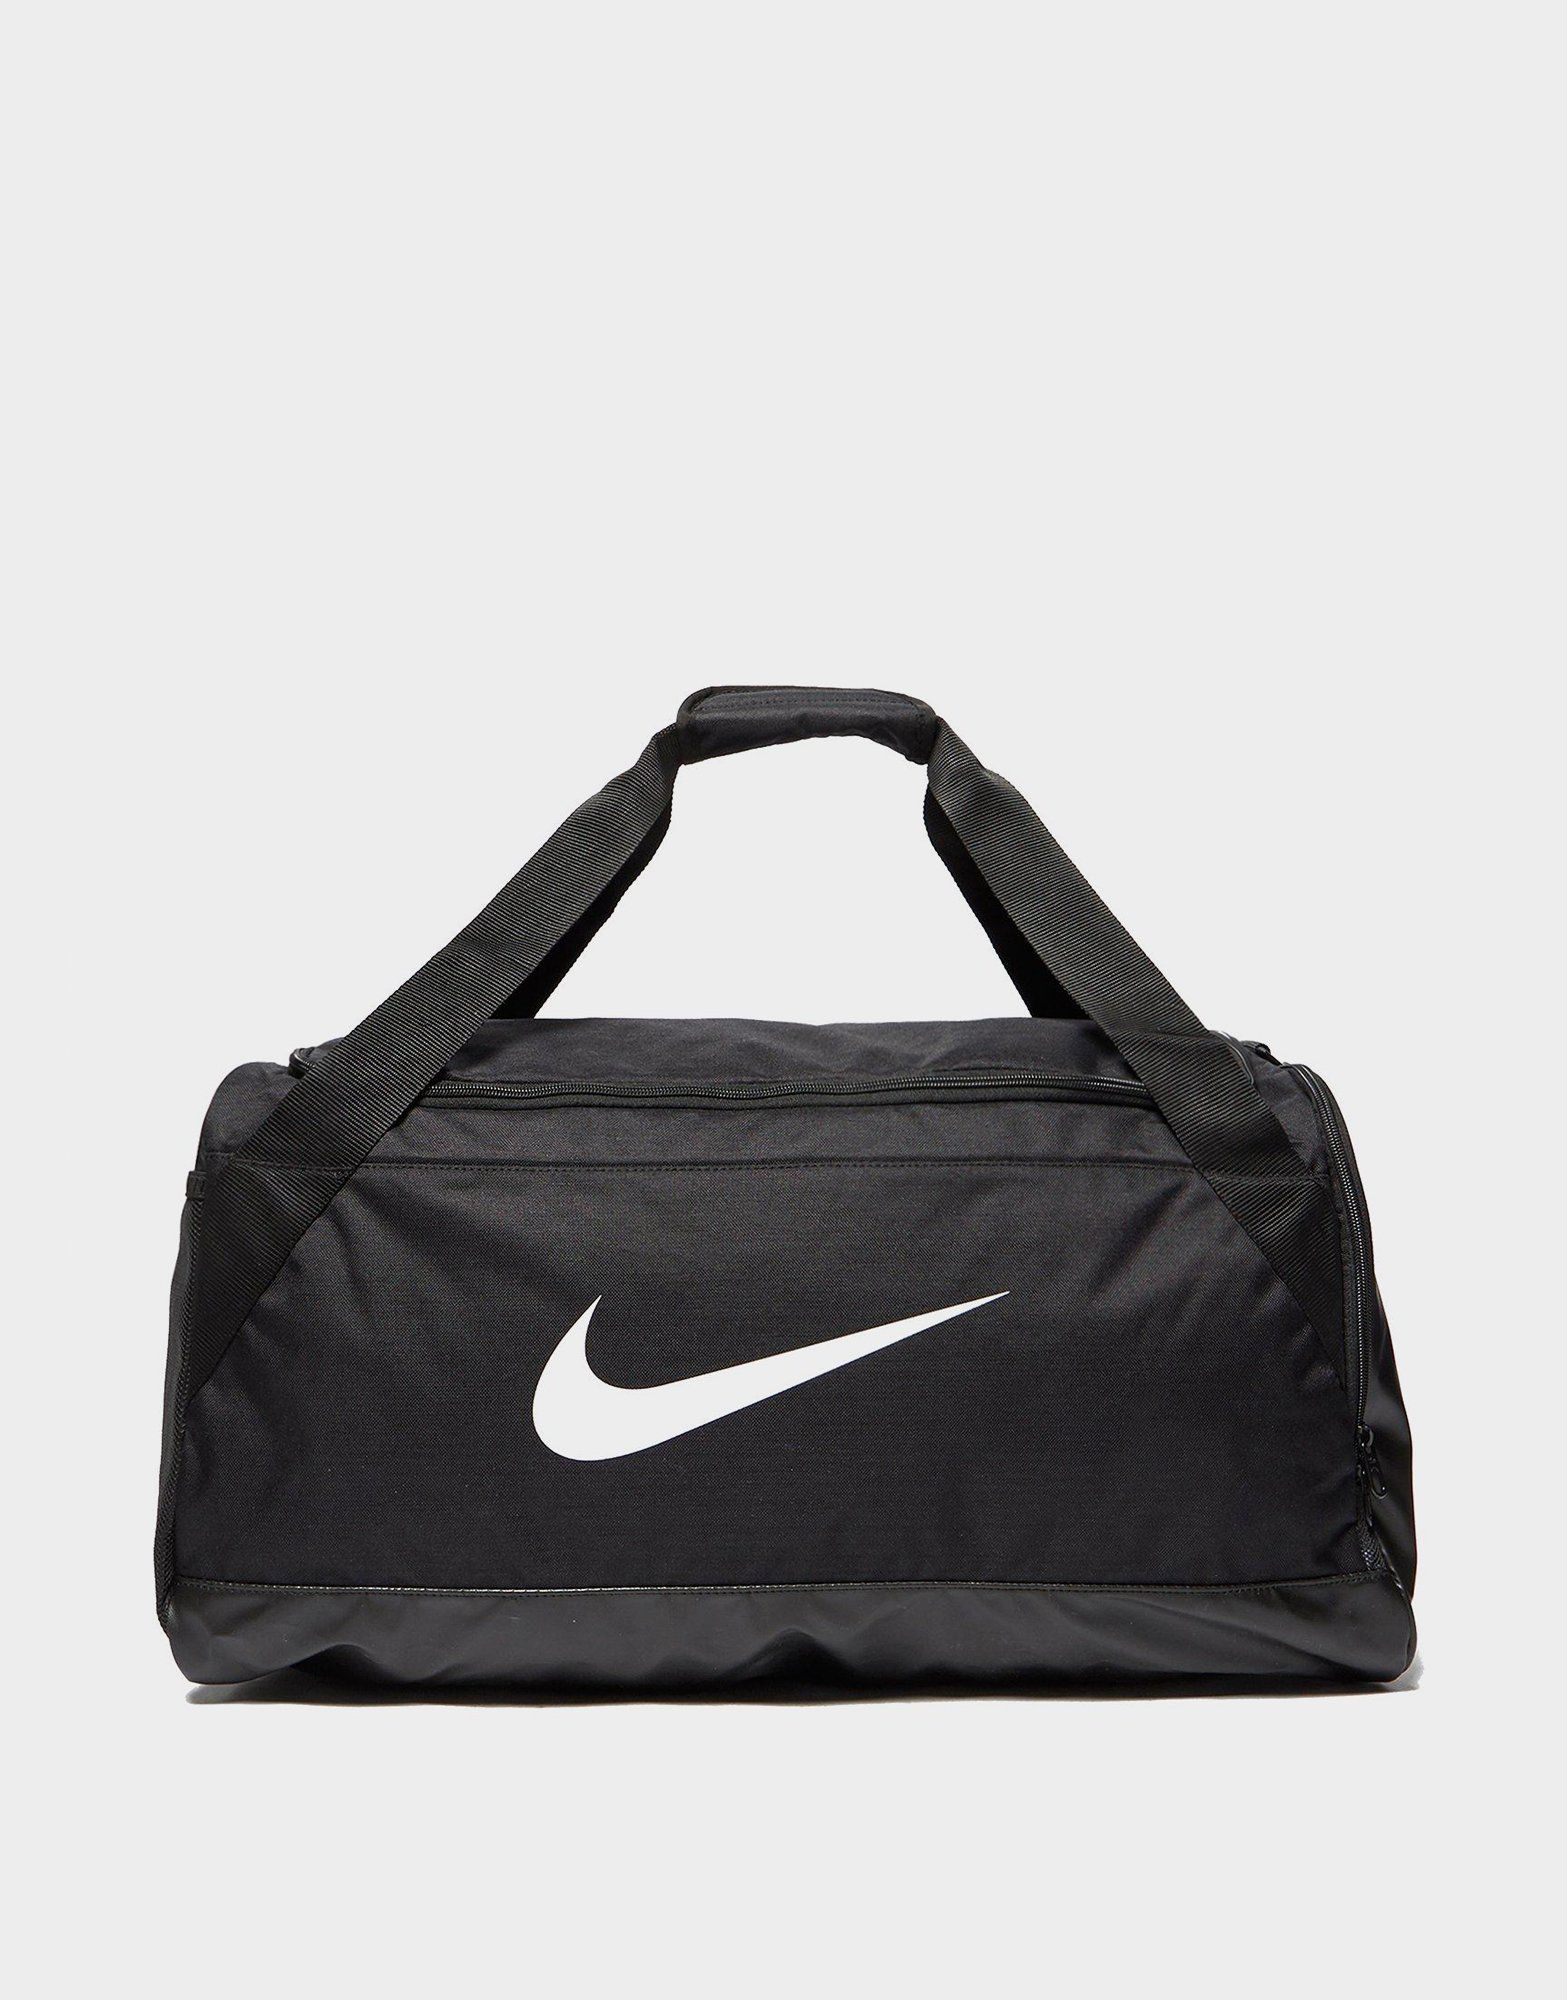 Nike Brasilia Medium Duffle Bag  b543223e8e1c1